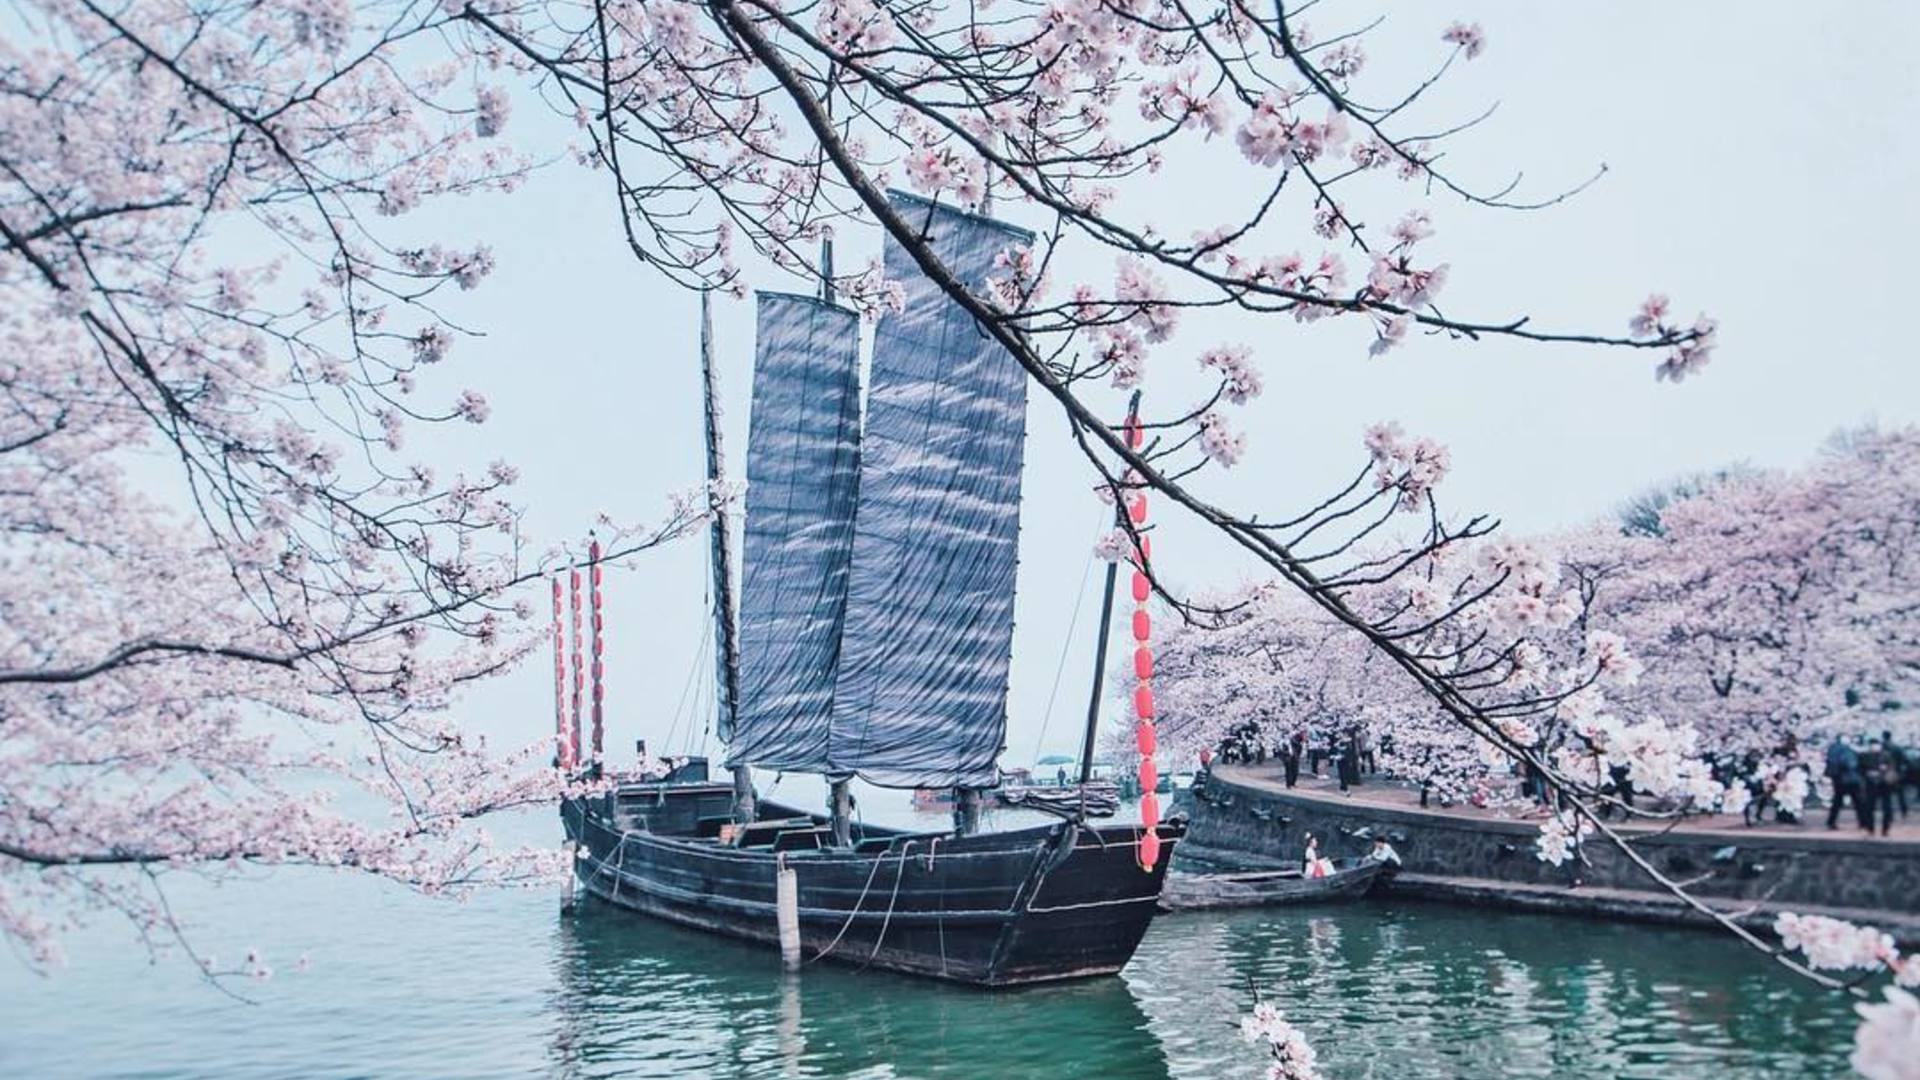 9 Places Other Than Tokyo Where the Cherry Blossoms Are Blooming